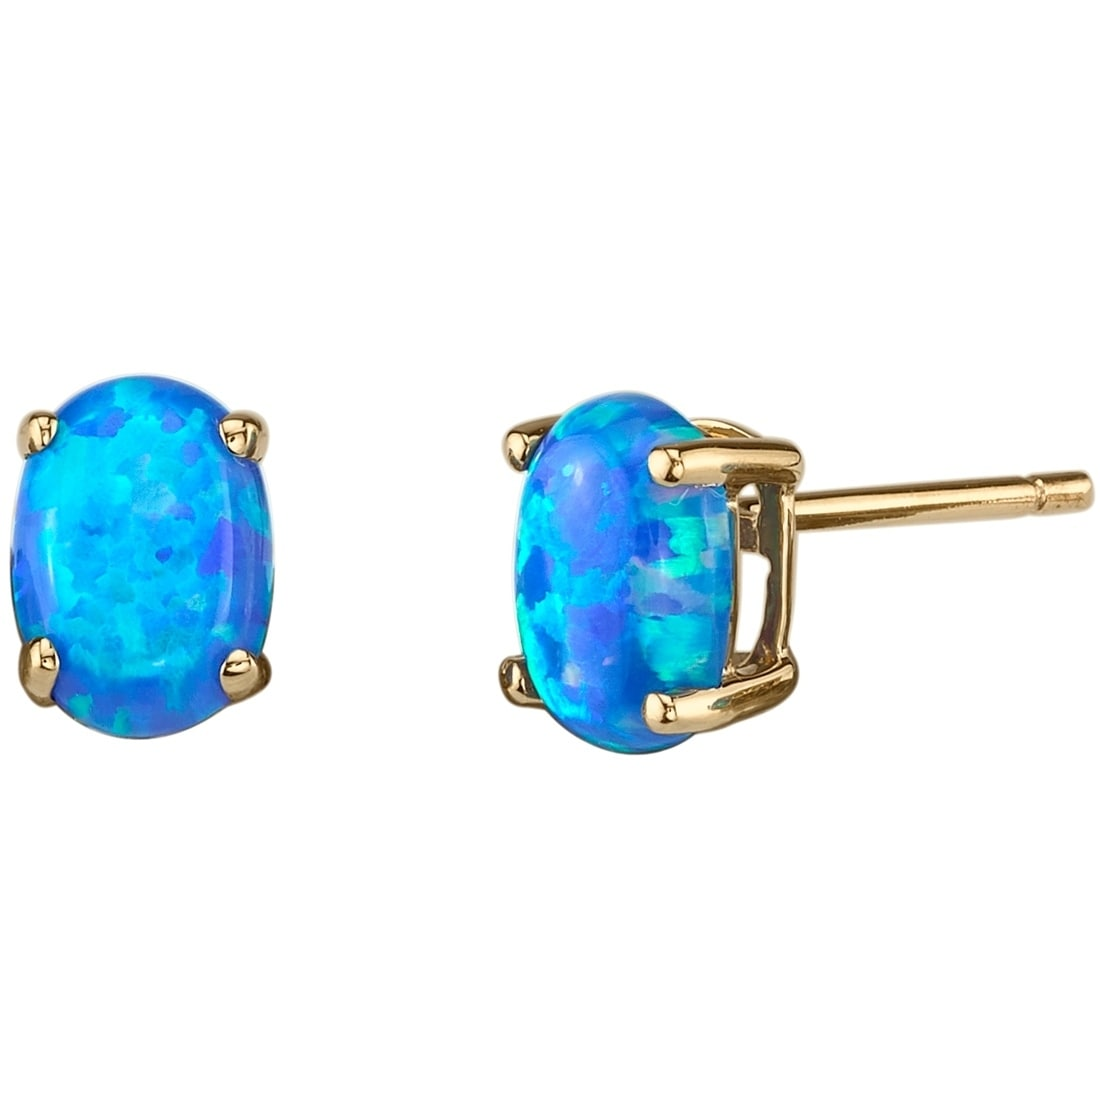 Solid Sterling Silver Rhodium Plated Blue Simulated Opal Stud Earrings